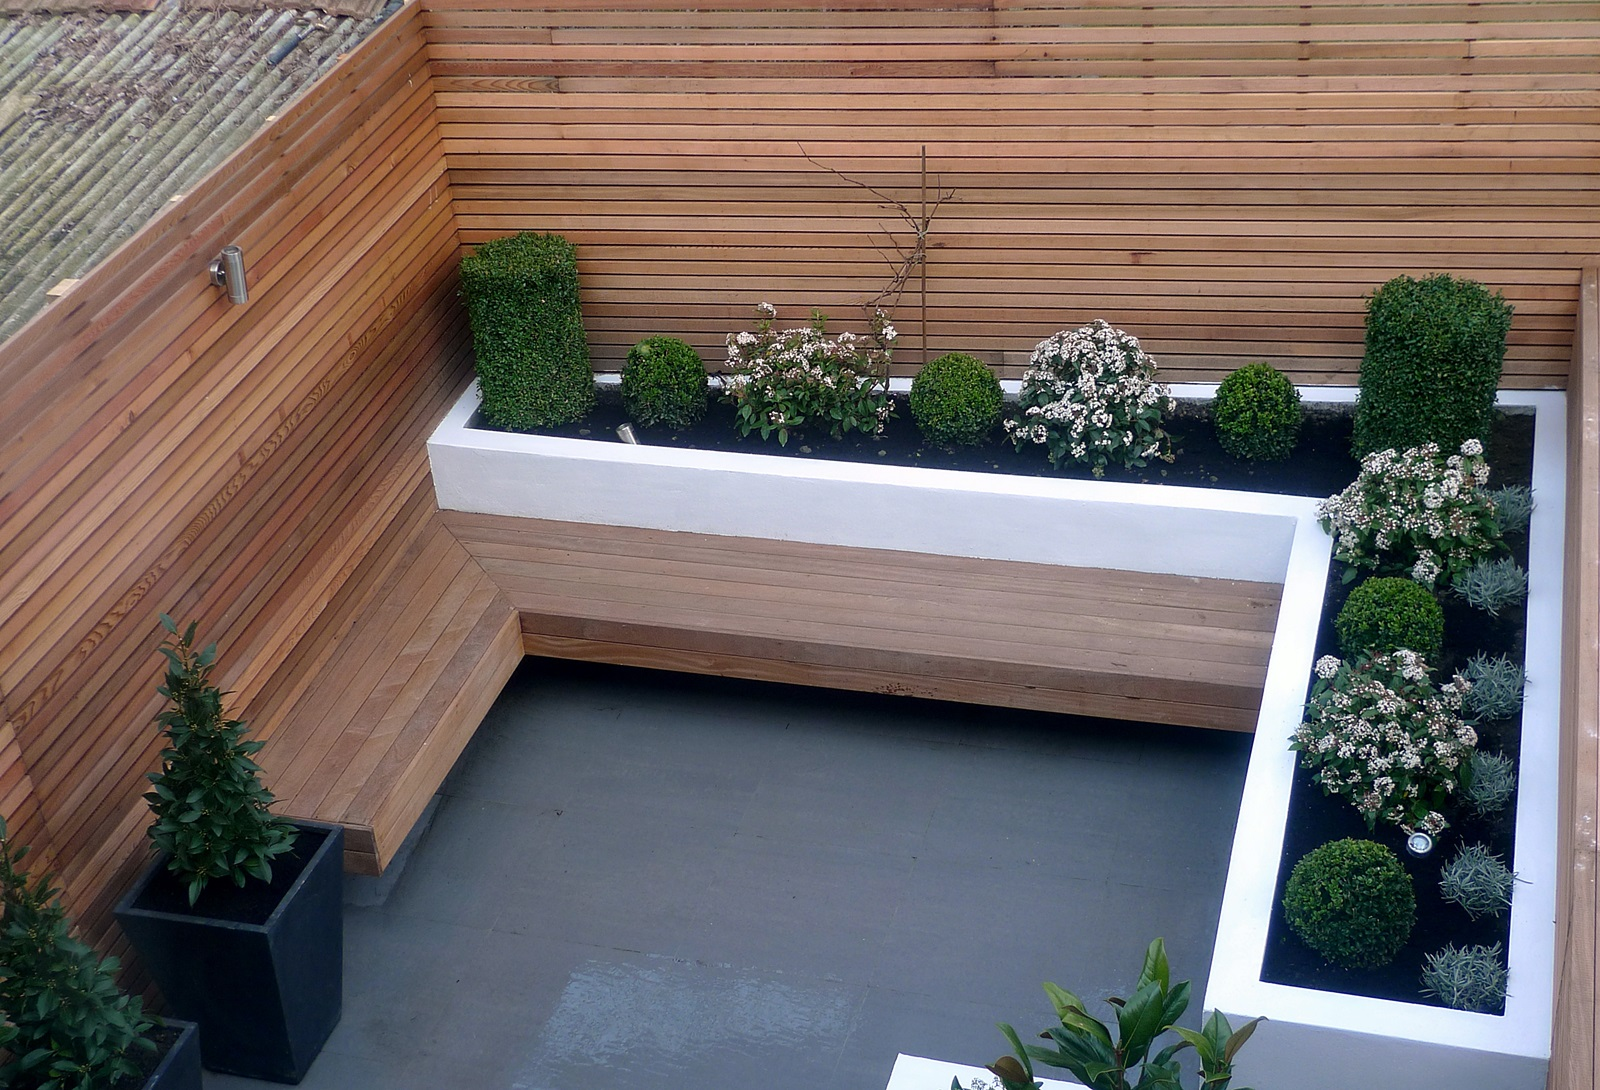 Garden design designer clapham balham battersea small for Garden design ideas photos for small gardens